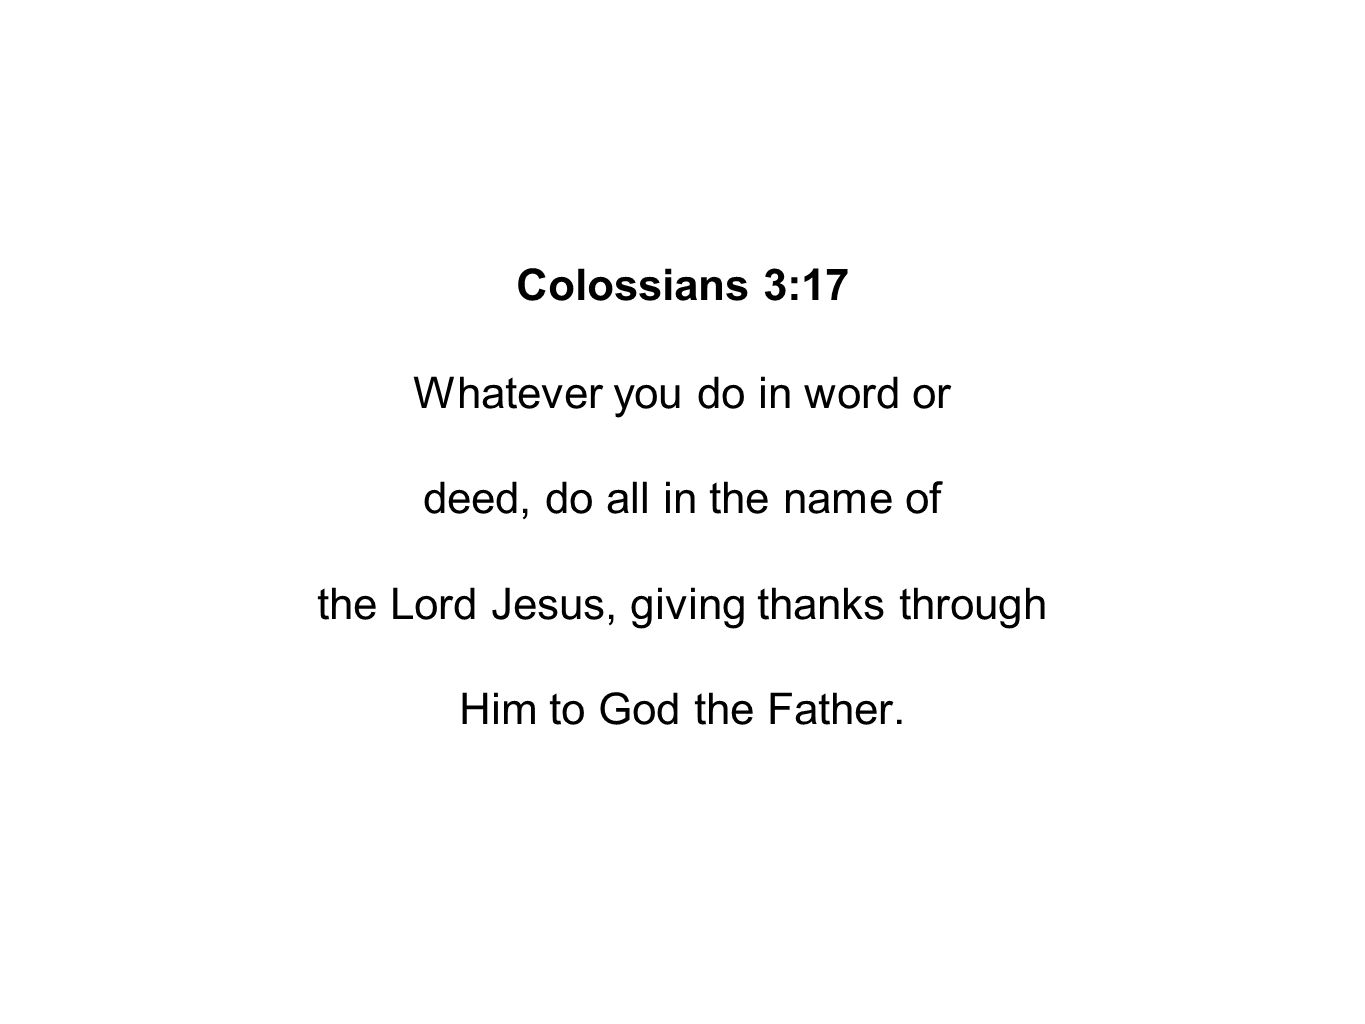 Colossians 3:17 Whatever you do in word or deed, do all in the name of the Lord Jesus, giving thanks through Him to God the Father.